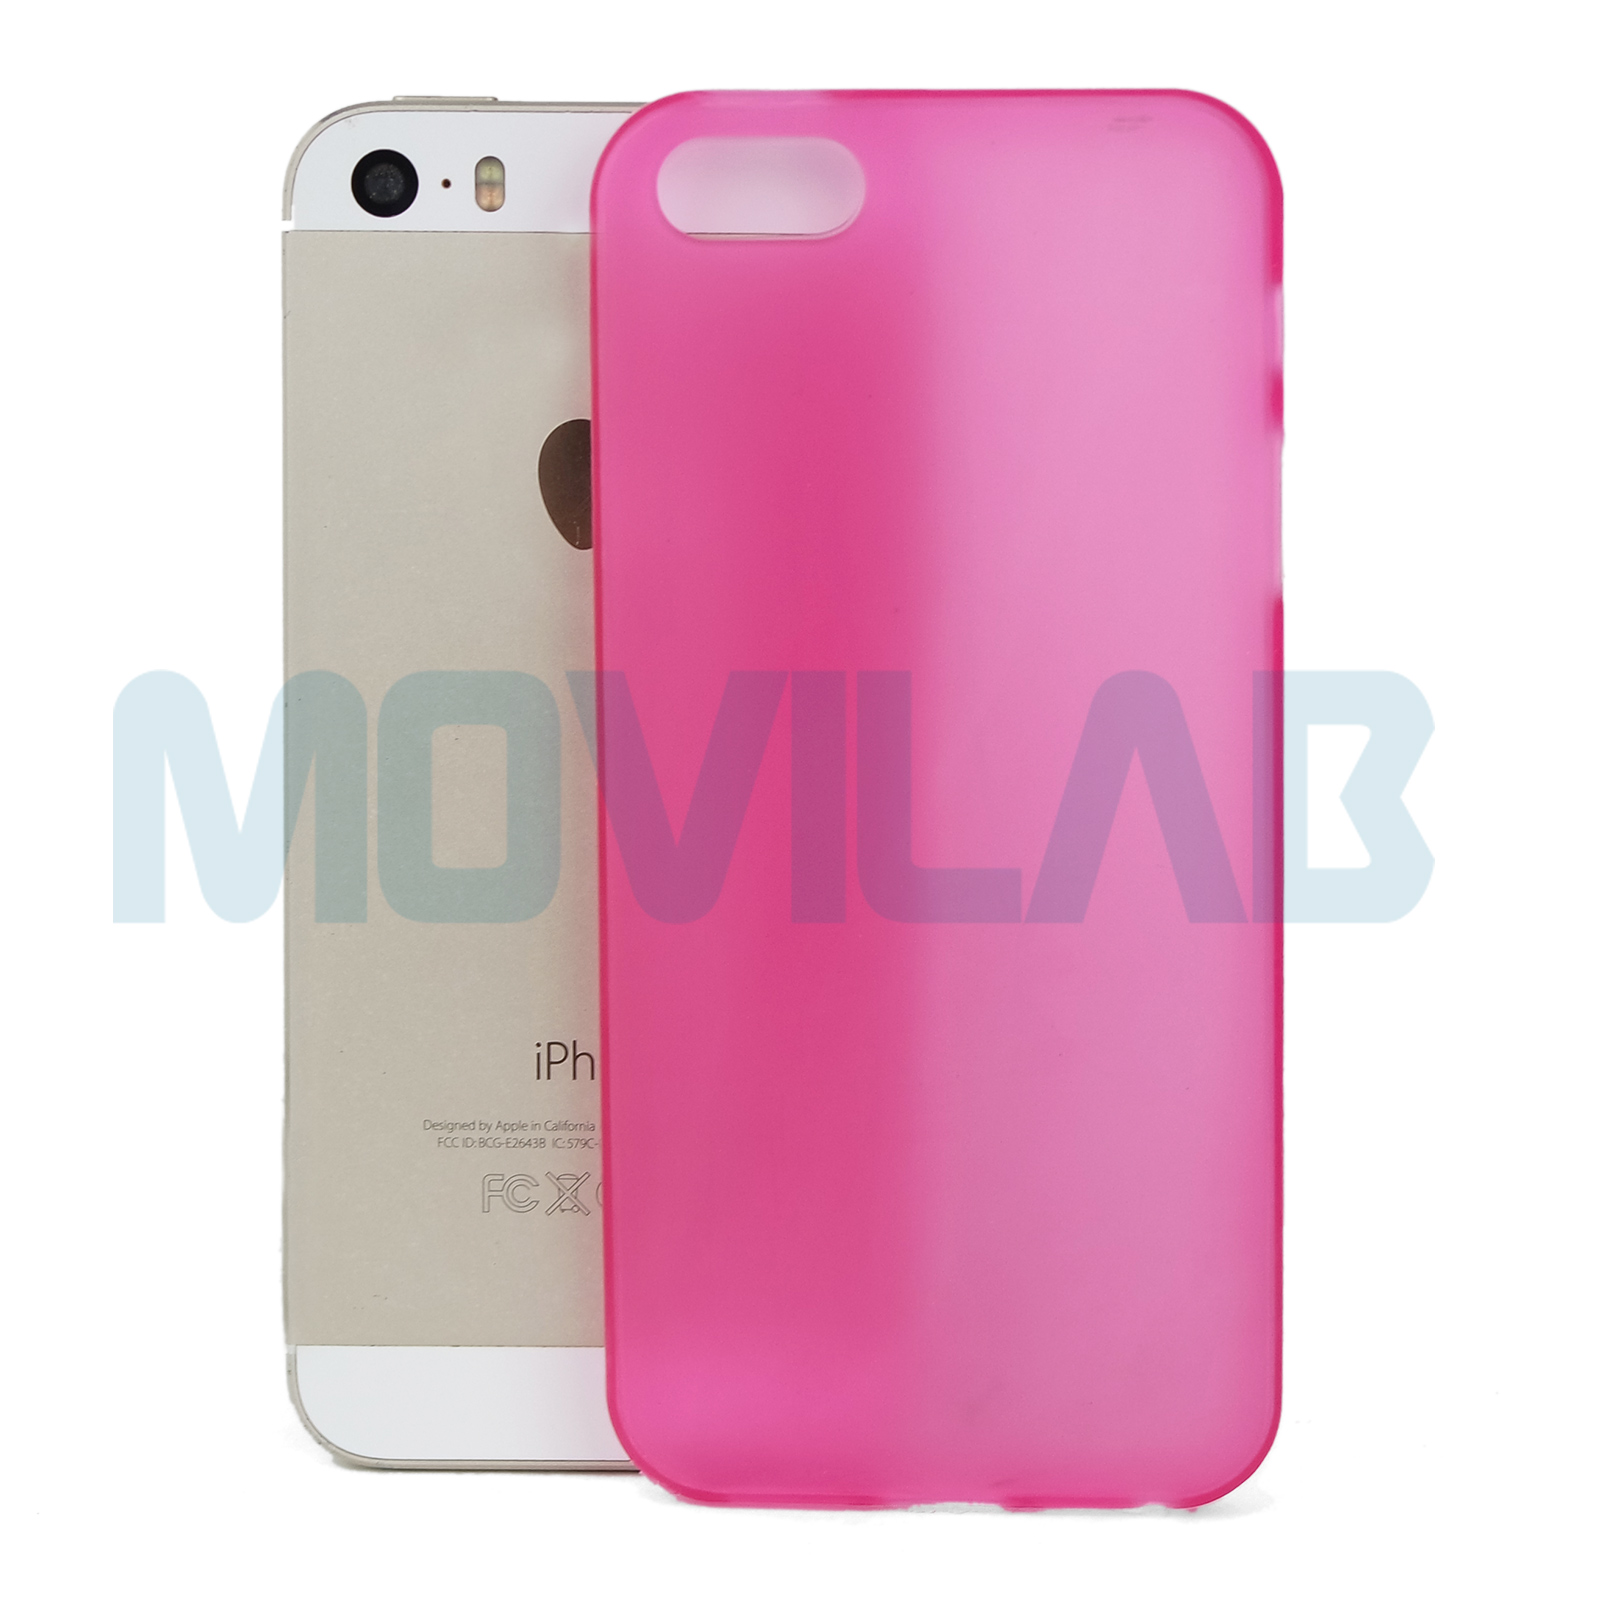 Funda Iphone 5 Rosa / Fucsia